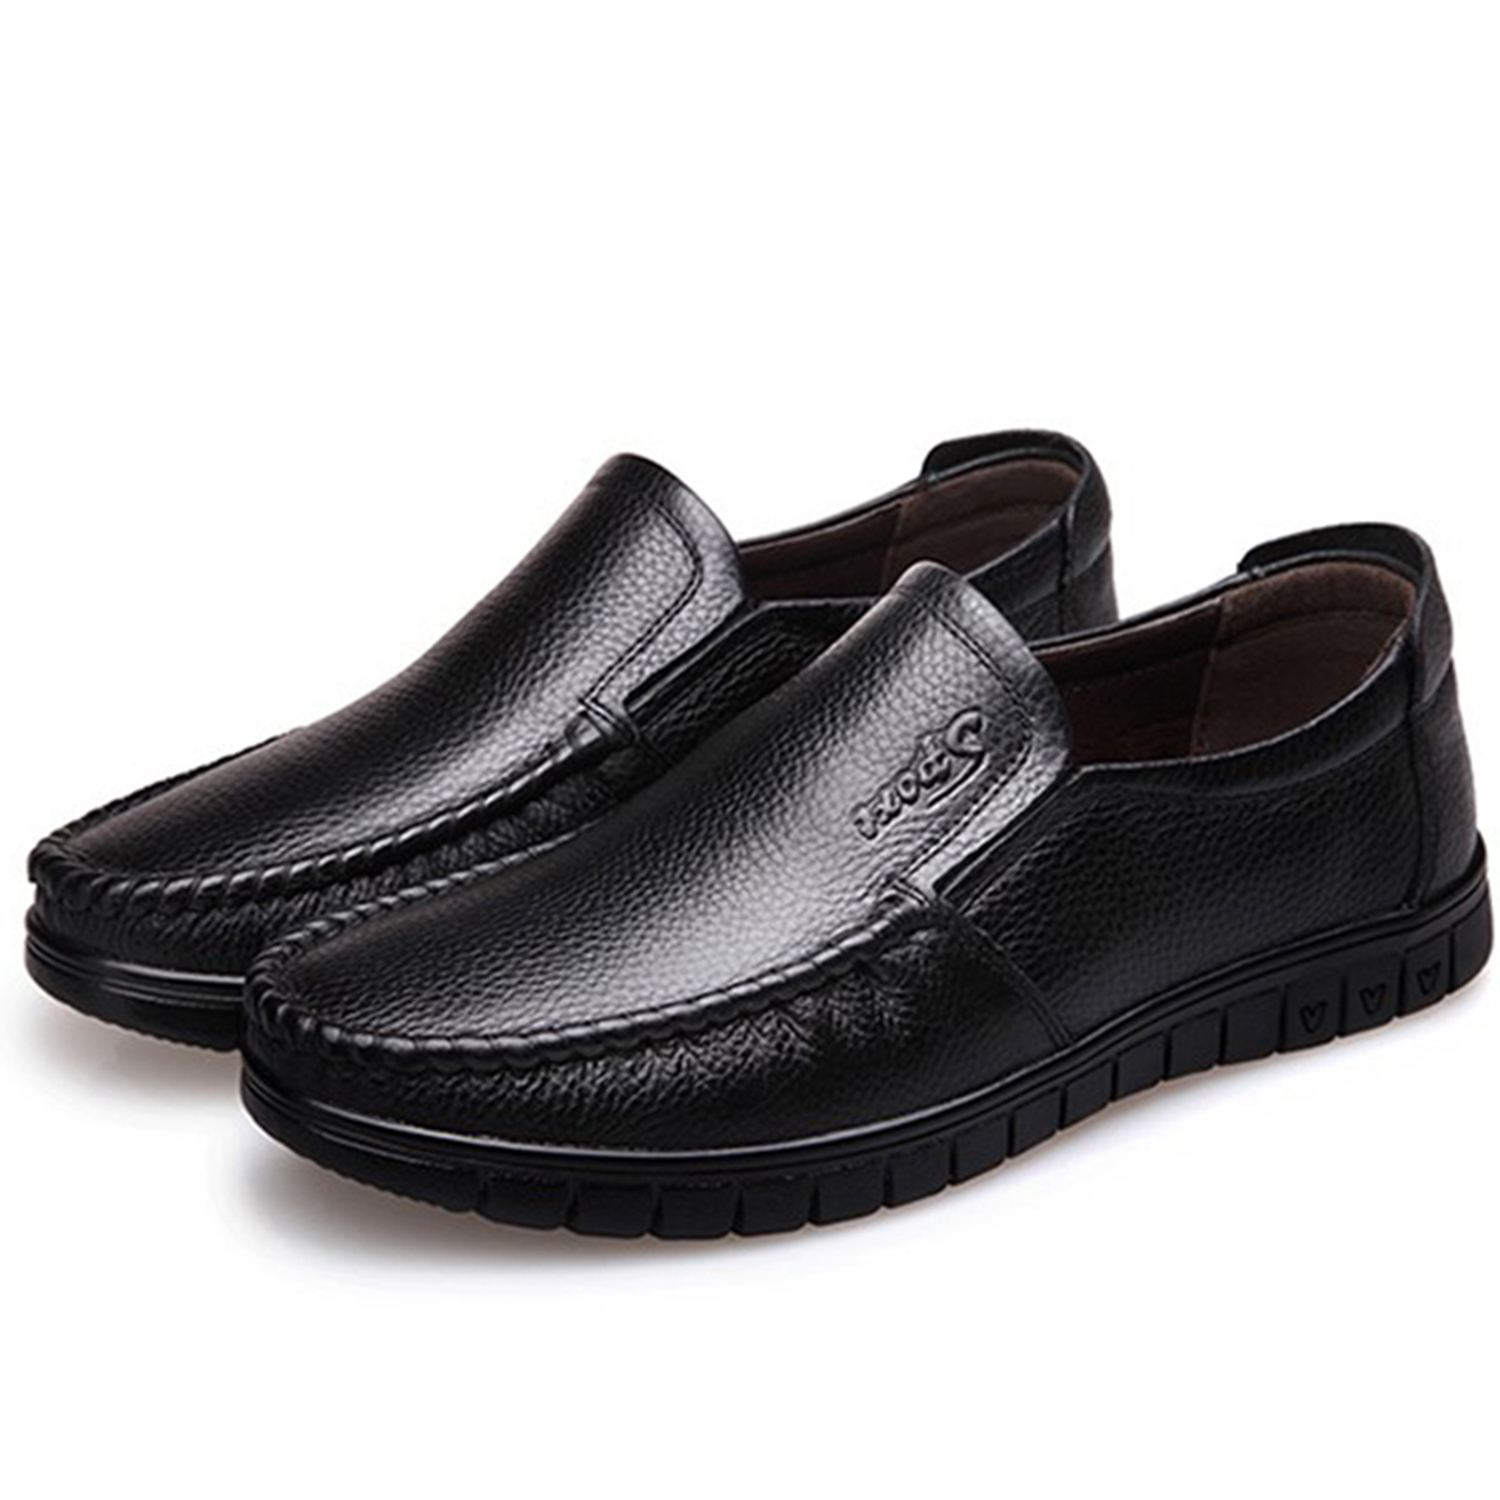 FGGS Men Soft Leather Loafers 2018 Spring Summer Male Casual Shoes Genuine Leather Moccasin Flat Breathable Driving Shoe